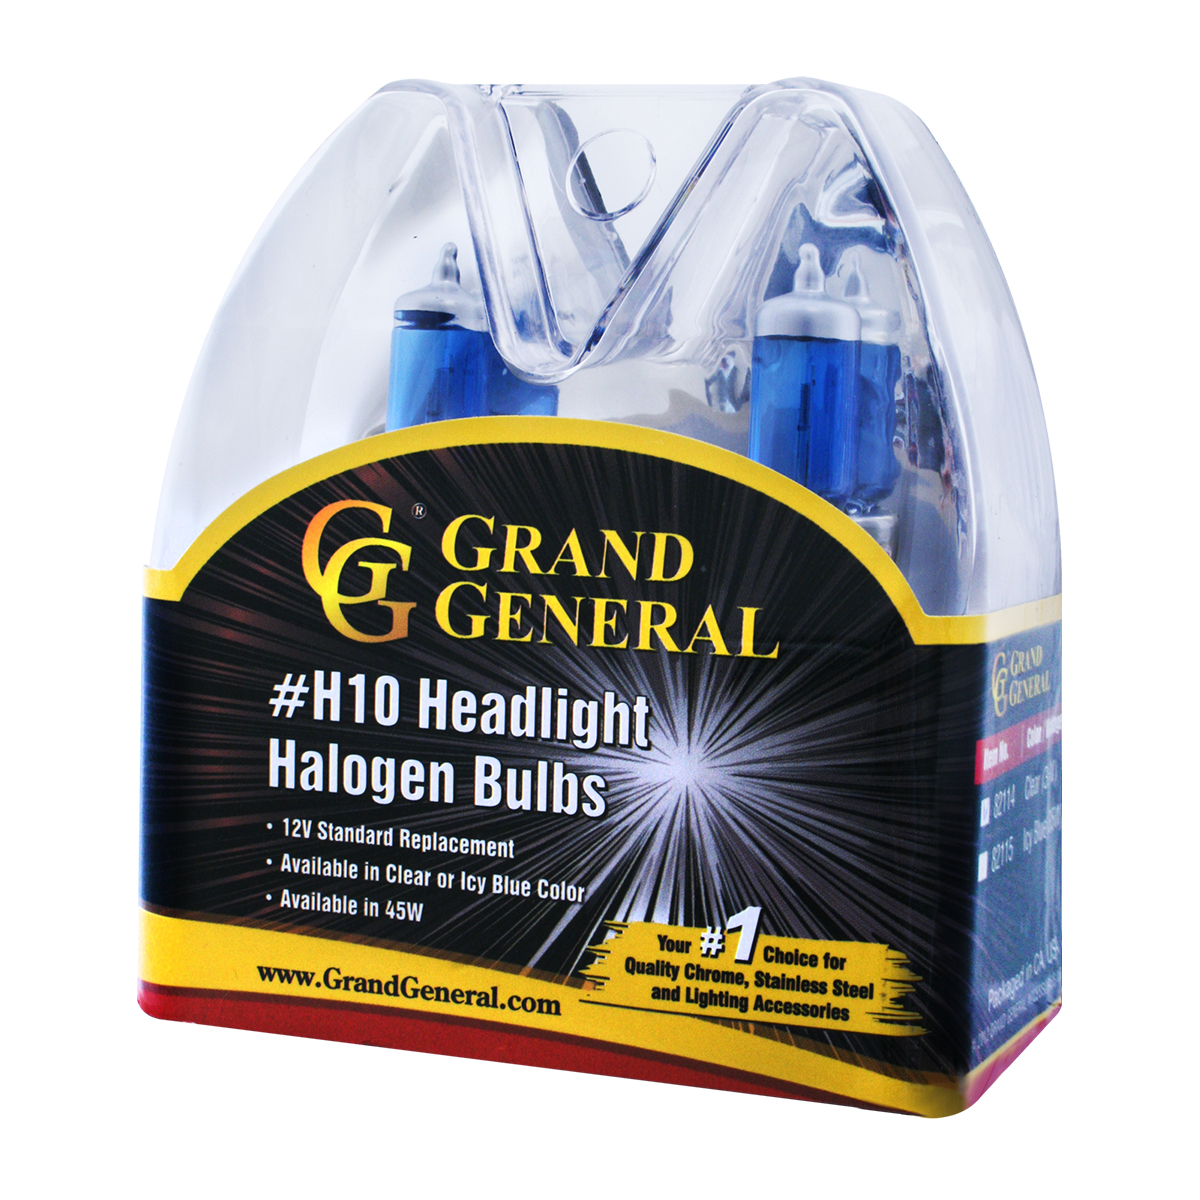 H10 Headlight Halogen Bulb